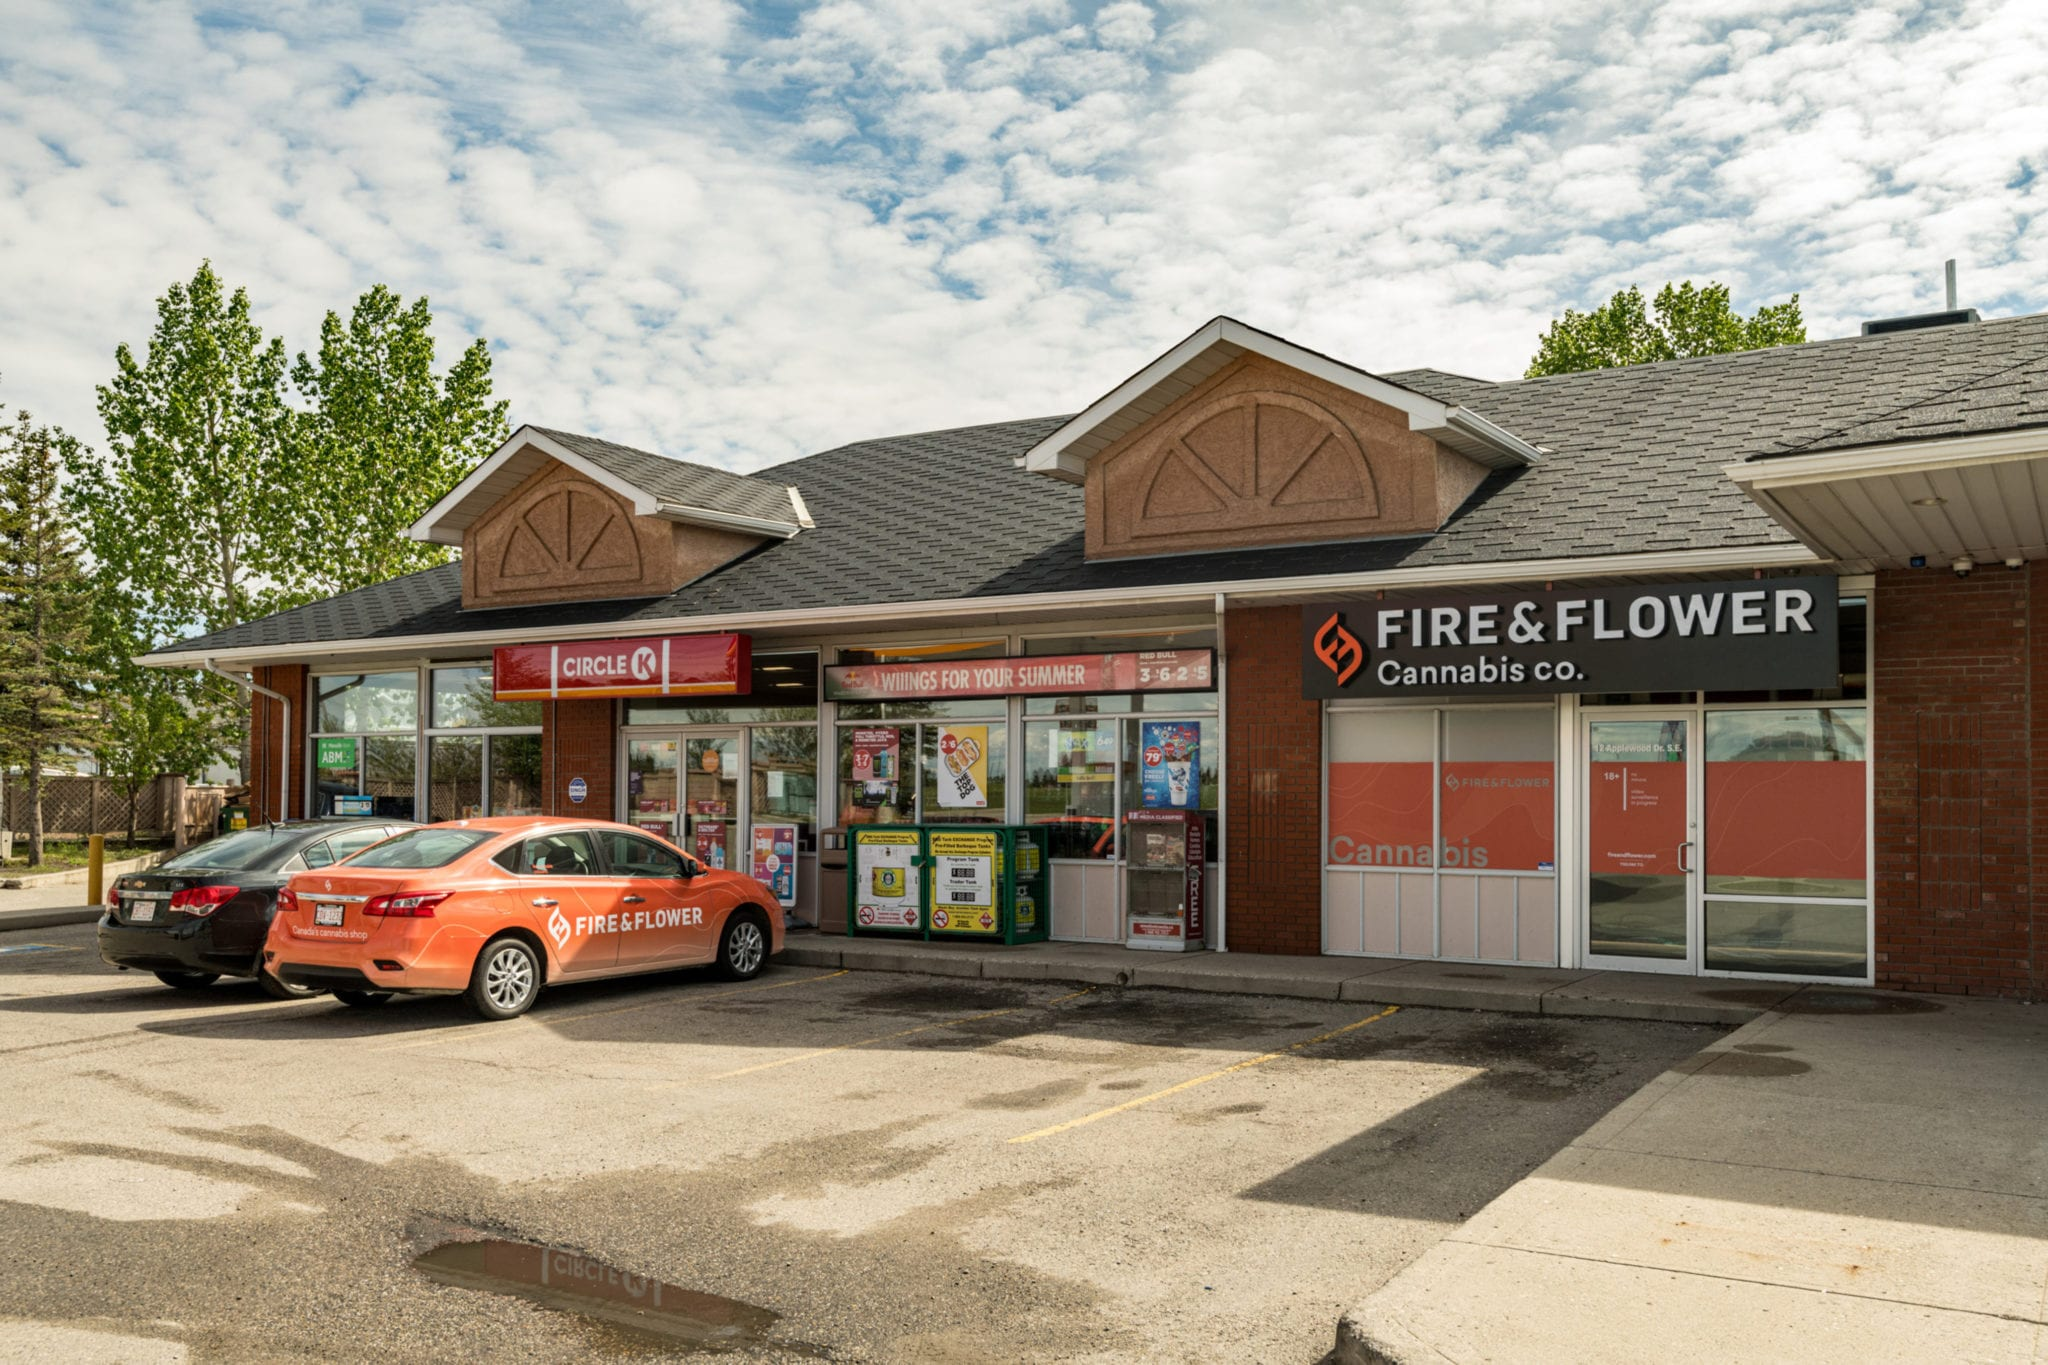 Fire & Flower launches pilot with Circle K